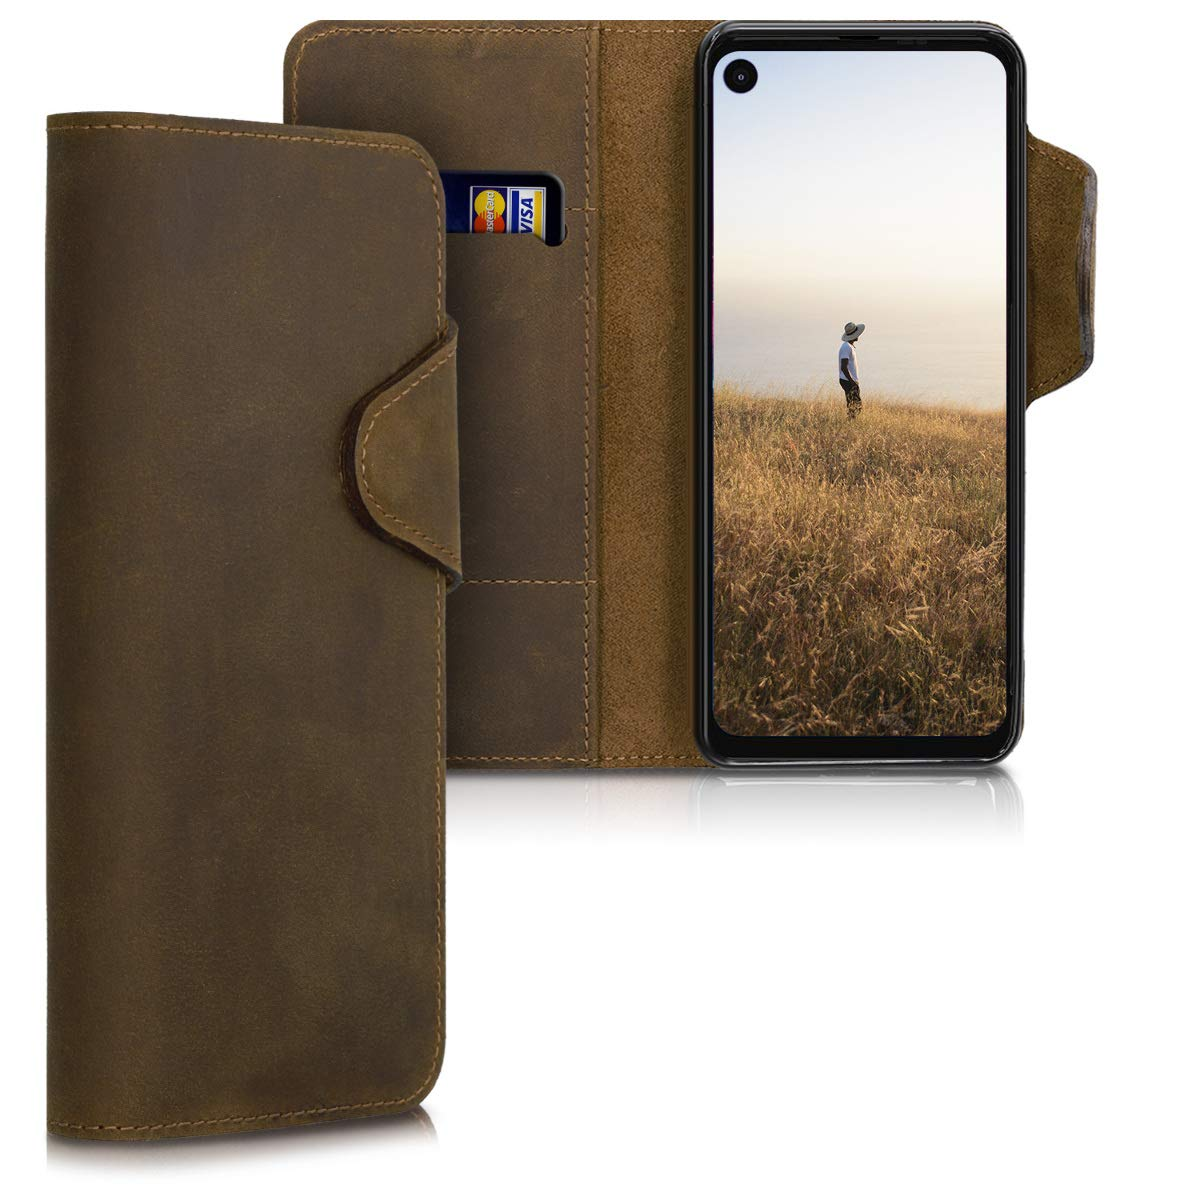 Funda De Cuyero Estilo Billetera Motorola One Action